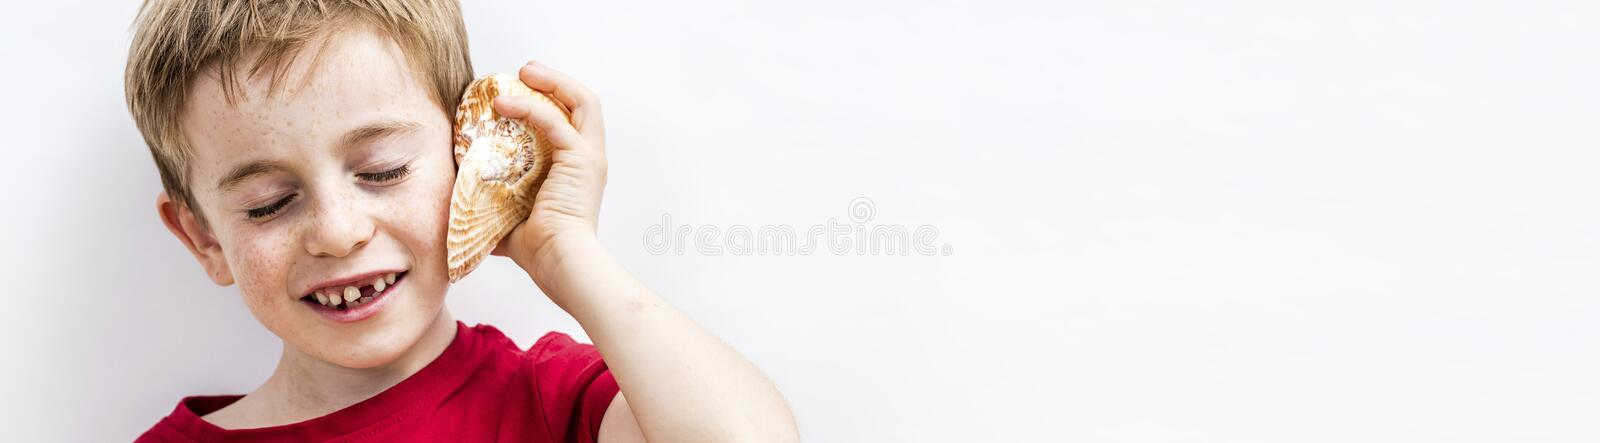 Long banner of smiling imaginative child listening to ocean shell stock photos